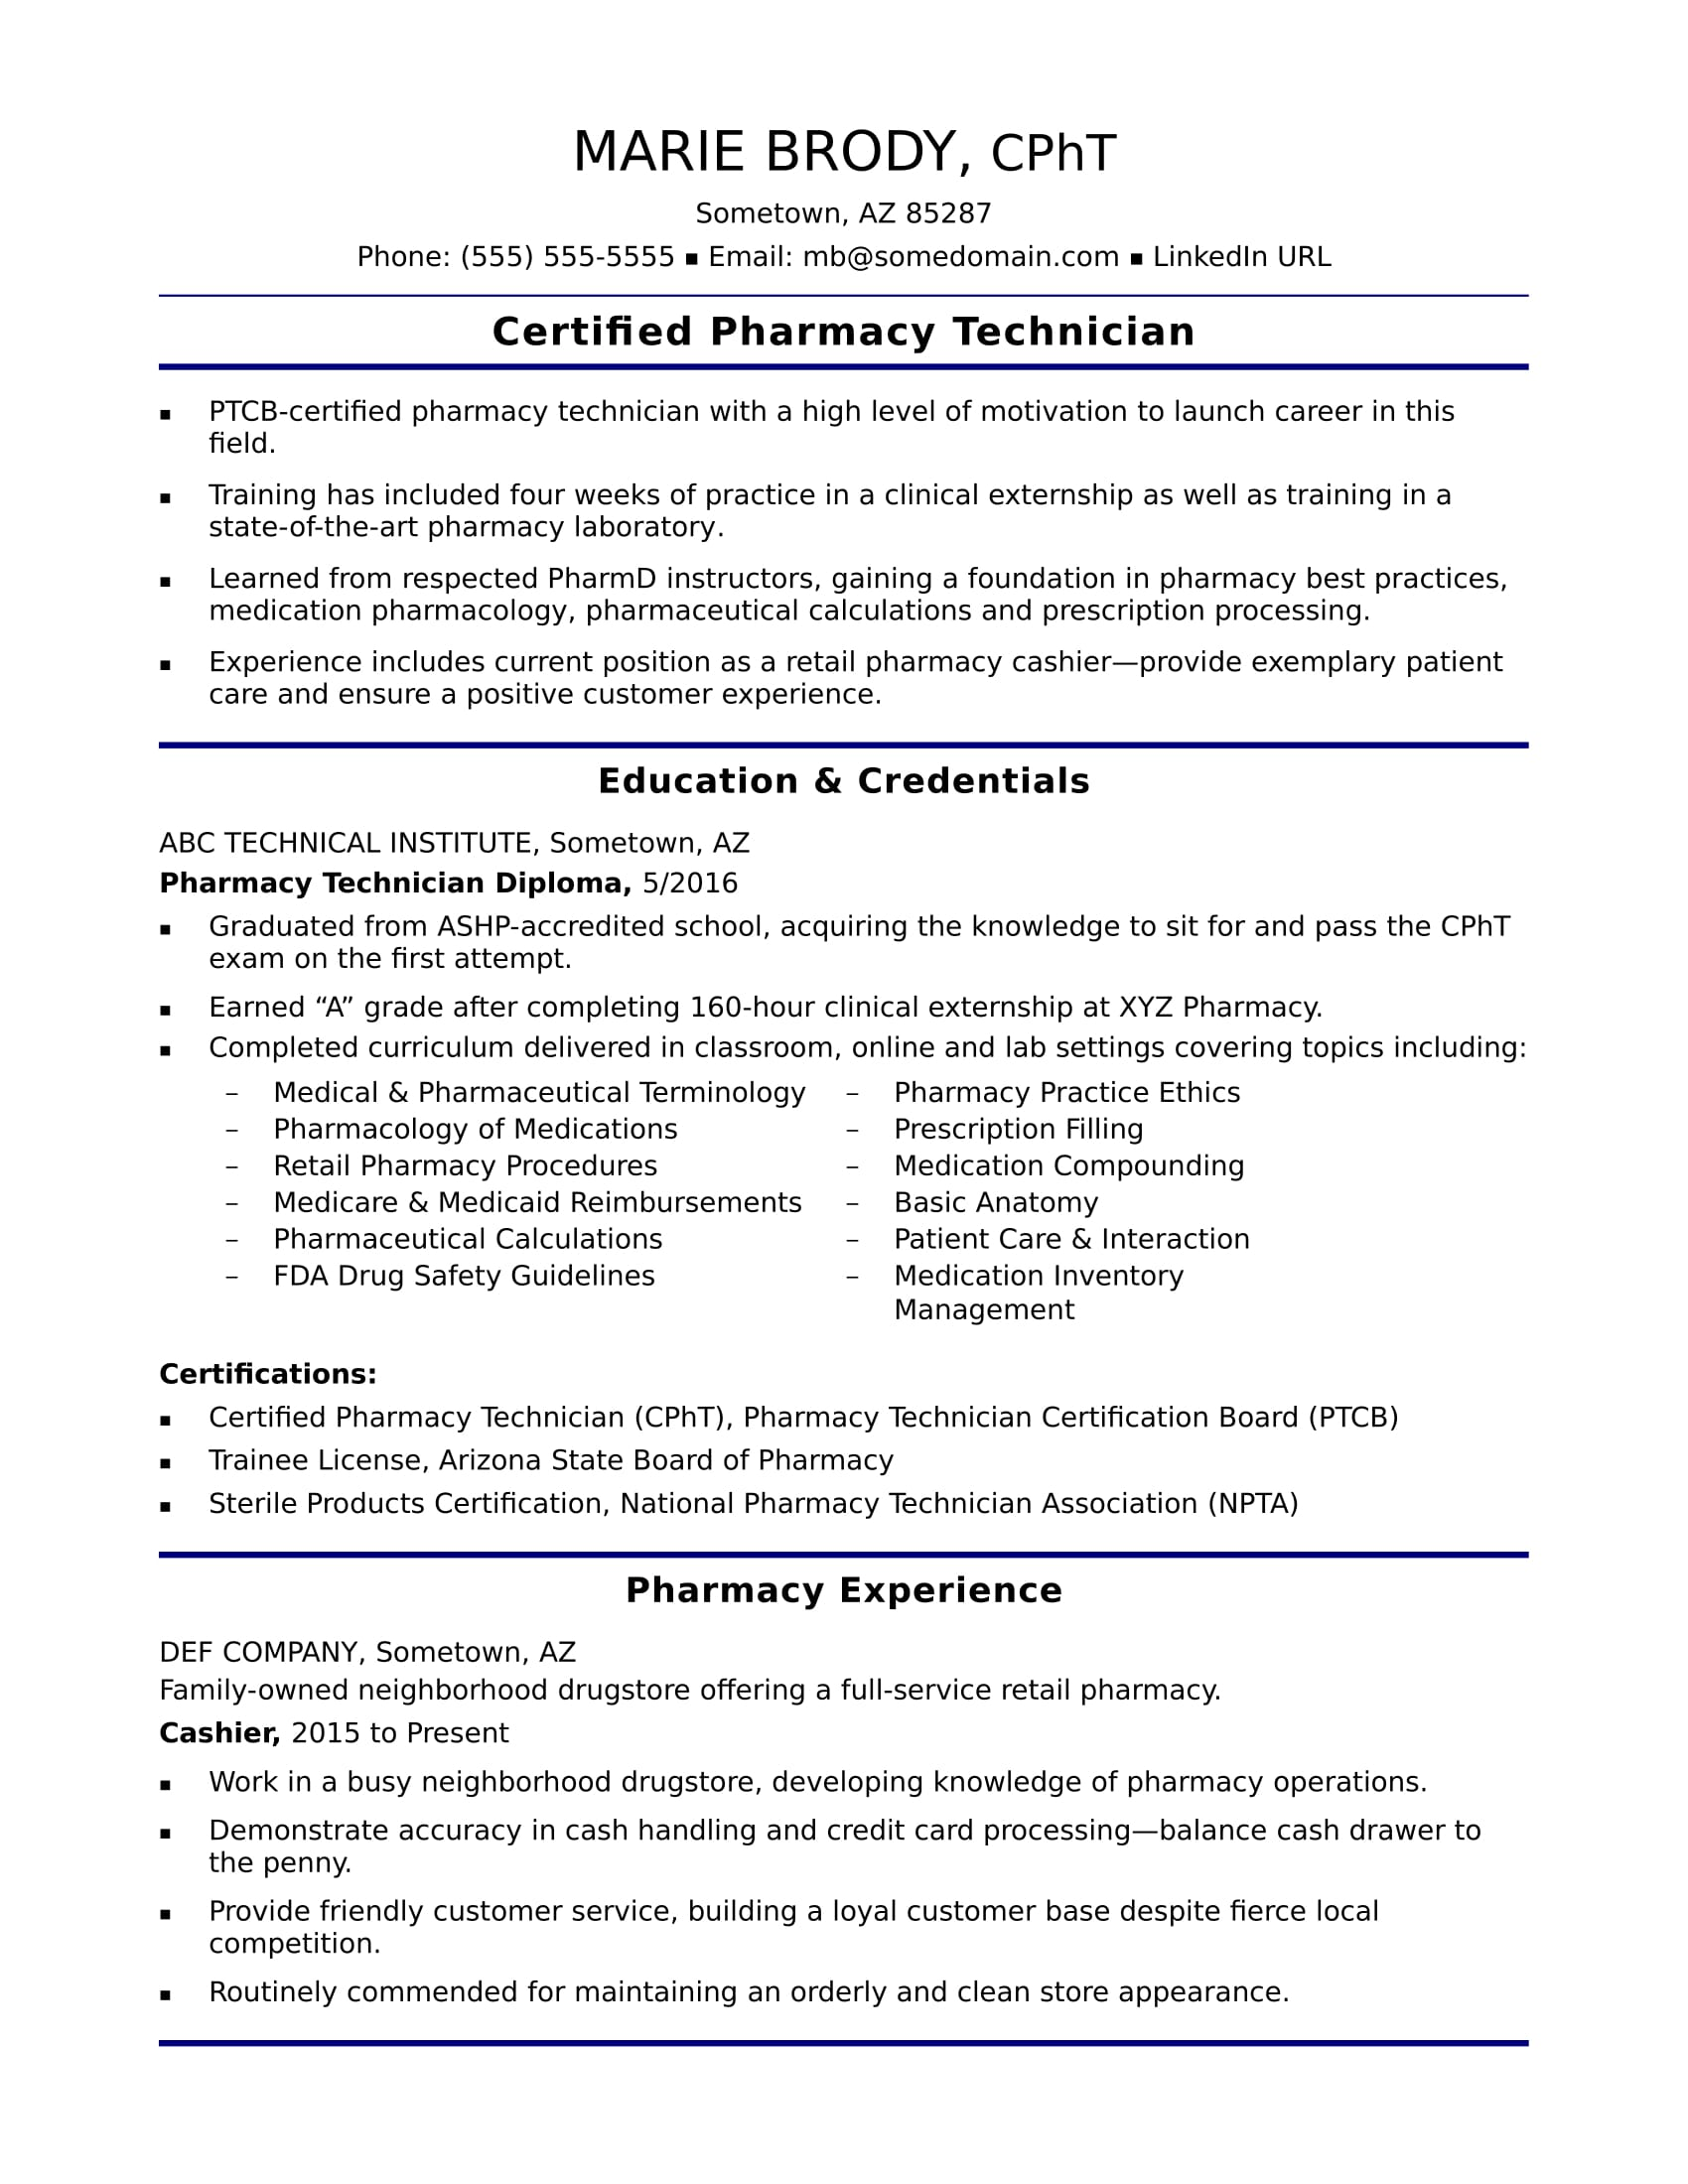 Elegant Sample Resume For An Entry Level Pharmacy Technician Inside Resume Pharmacy Technician